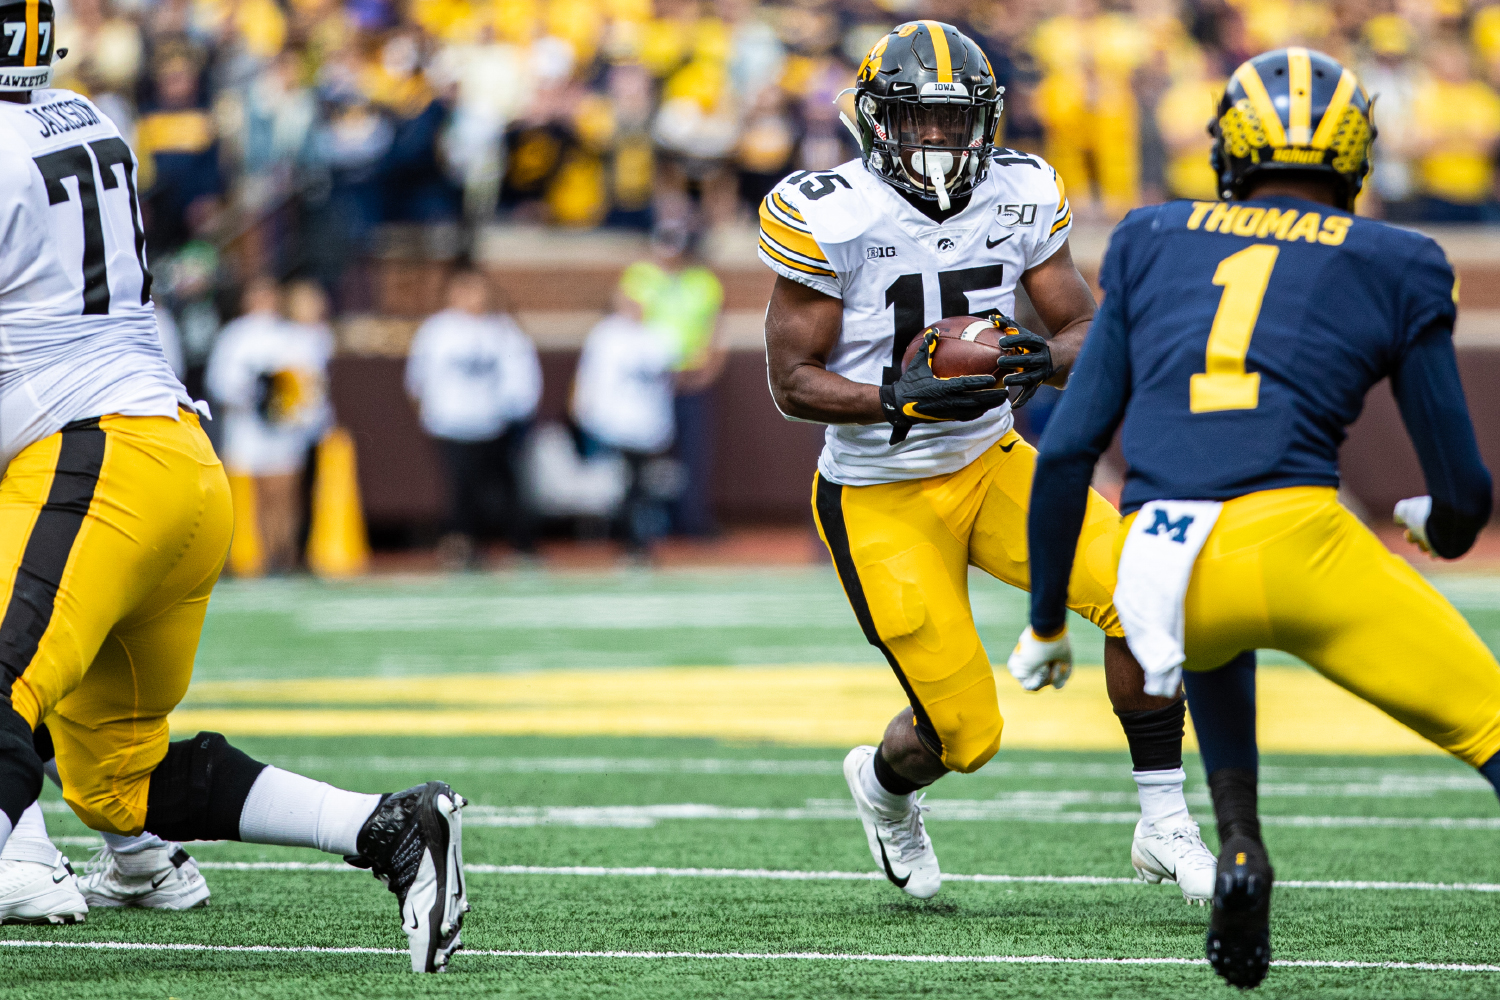 Iowa running back Tyler Goodson carries the ball during a football game between Iowa and Michigan in Ann Arbor on Saturday, October 5, 2019. The Wolverines celebrated homecoming and defeated the Hawkeyes, 10-3. (Shivansh Ahuja/The Daily Iowan)